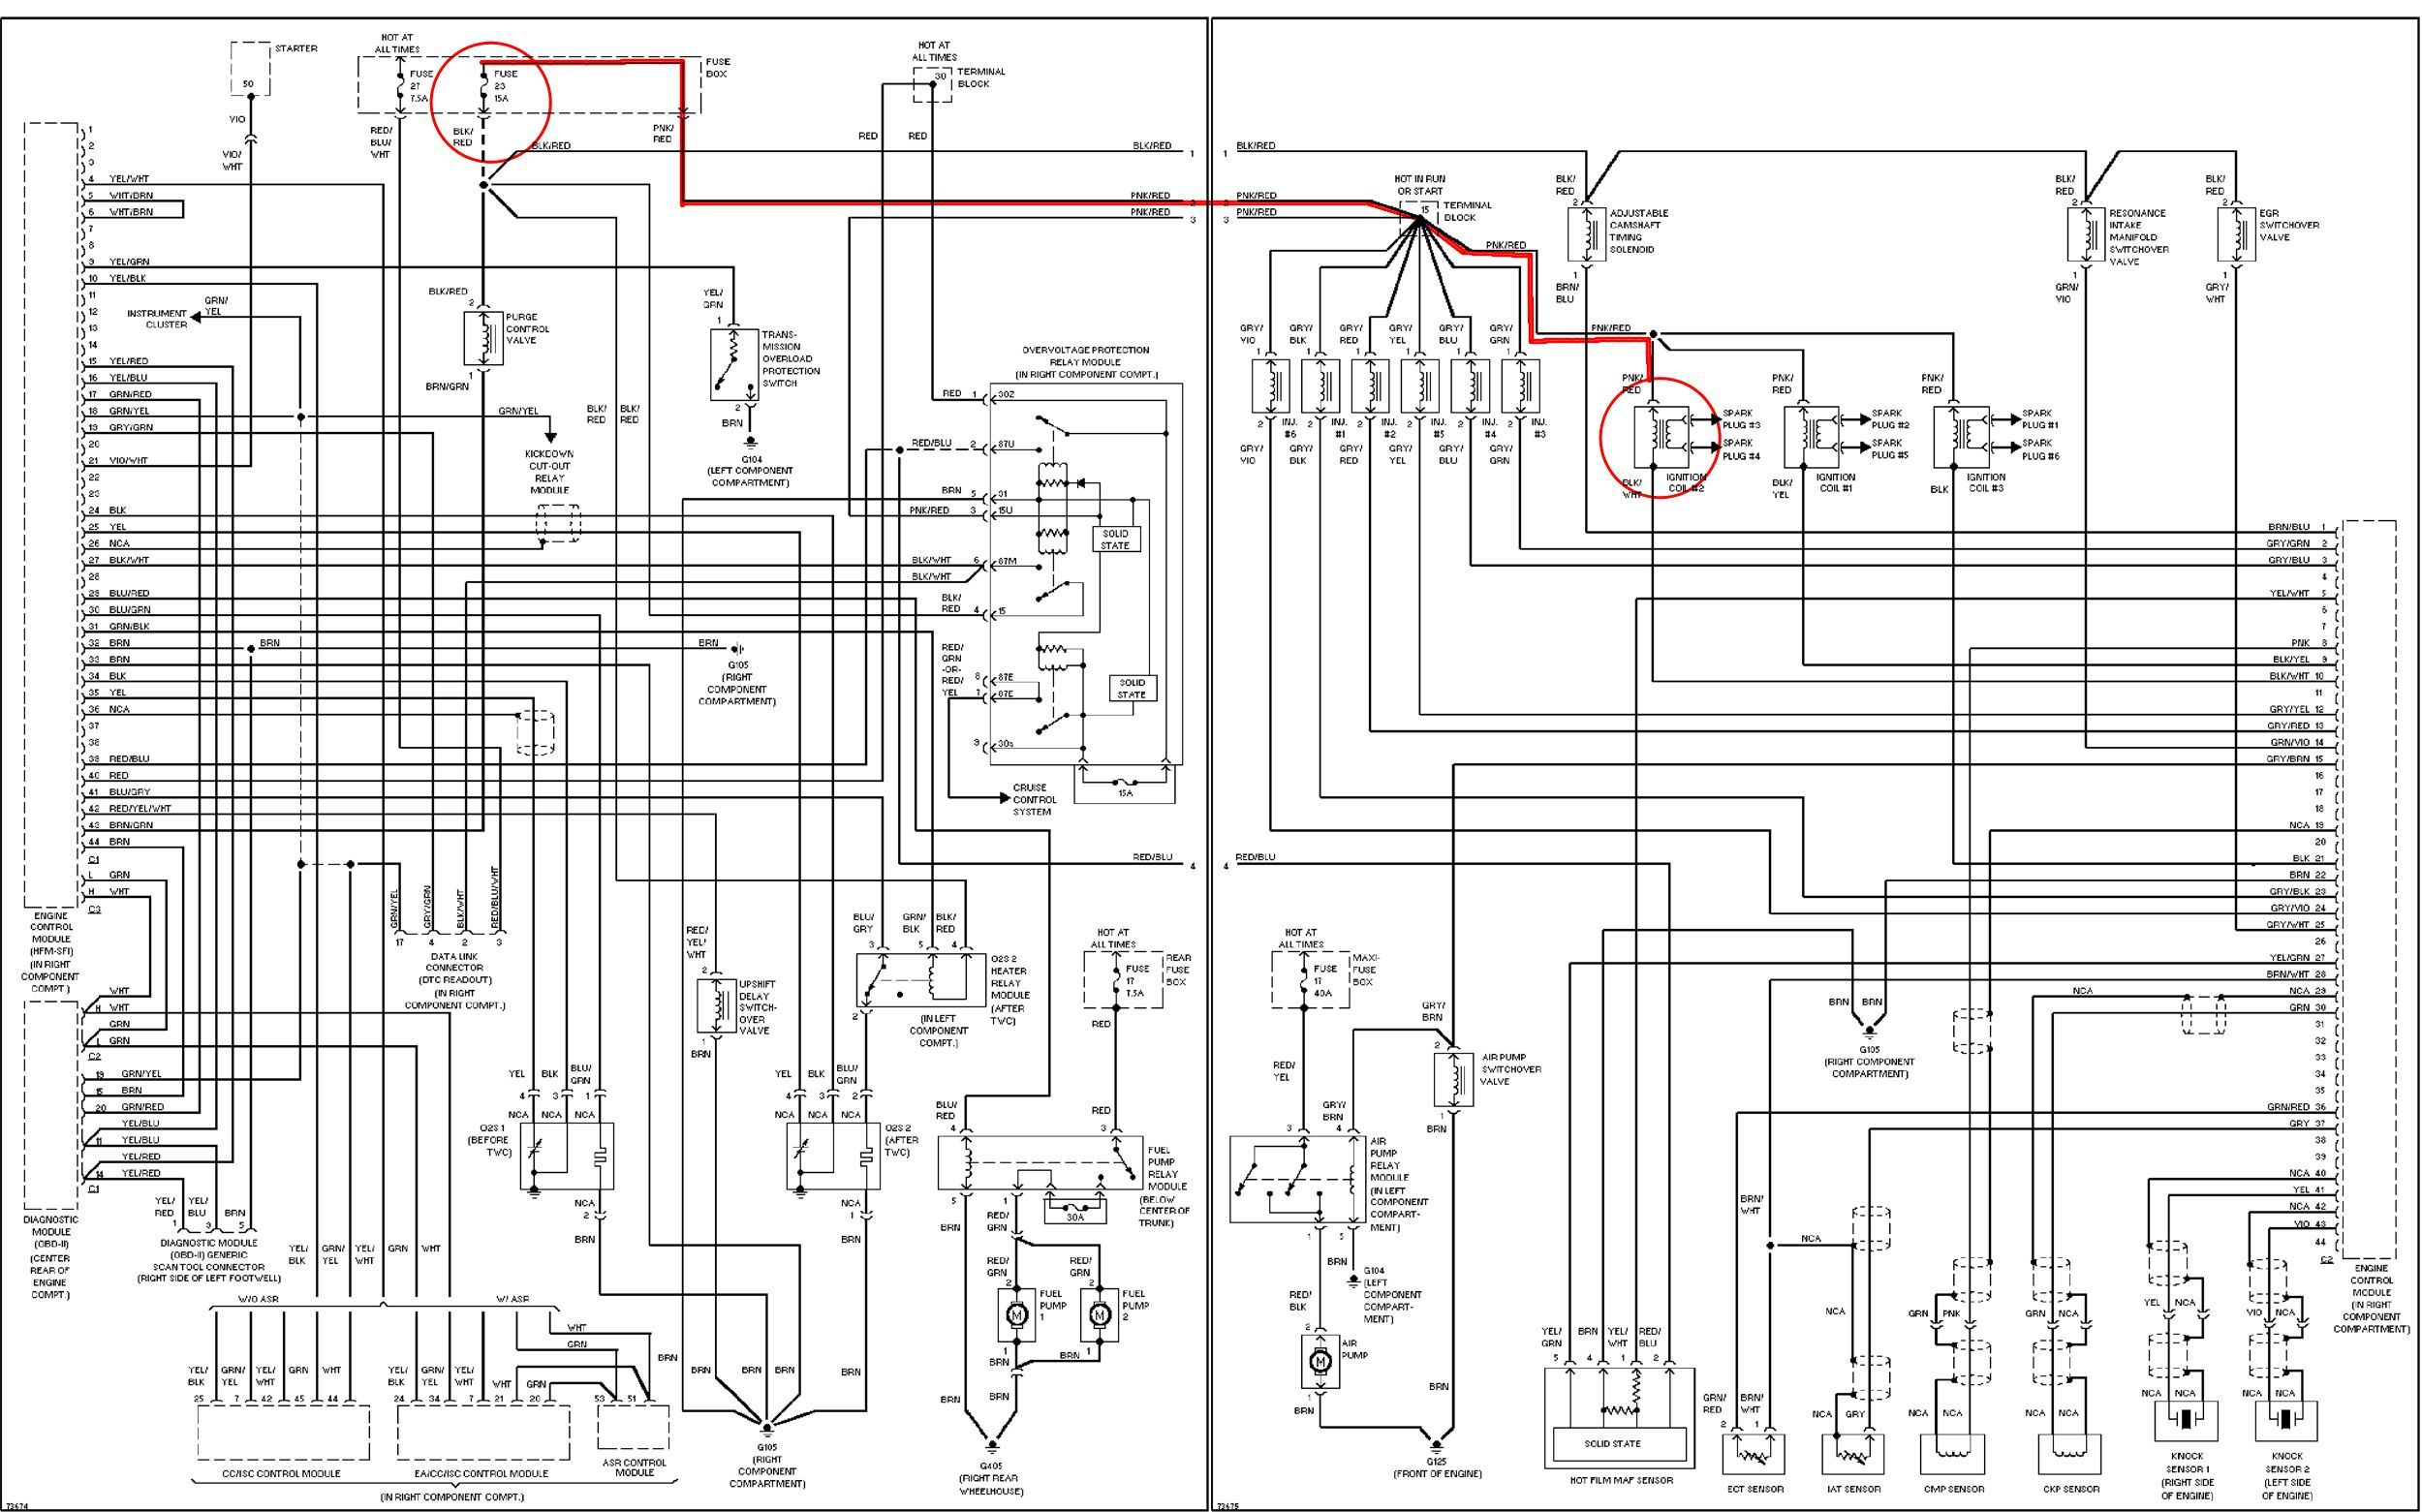 hight resolution of k1blm to mercedes benz wiring diagram